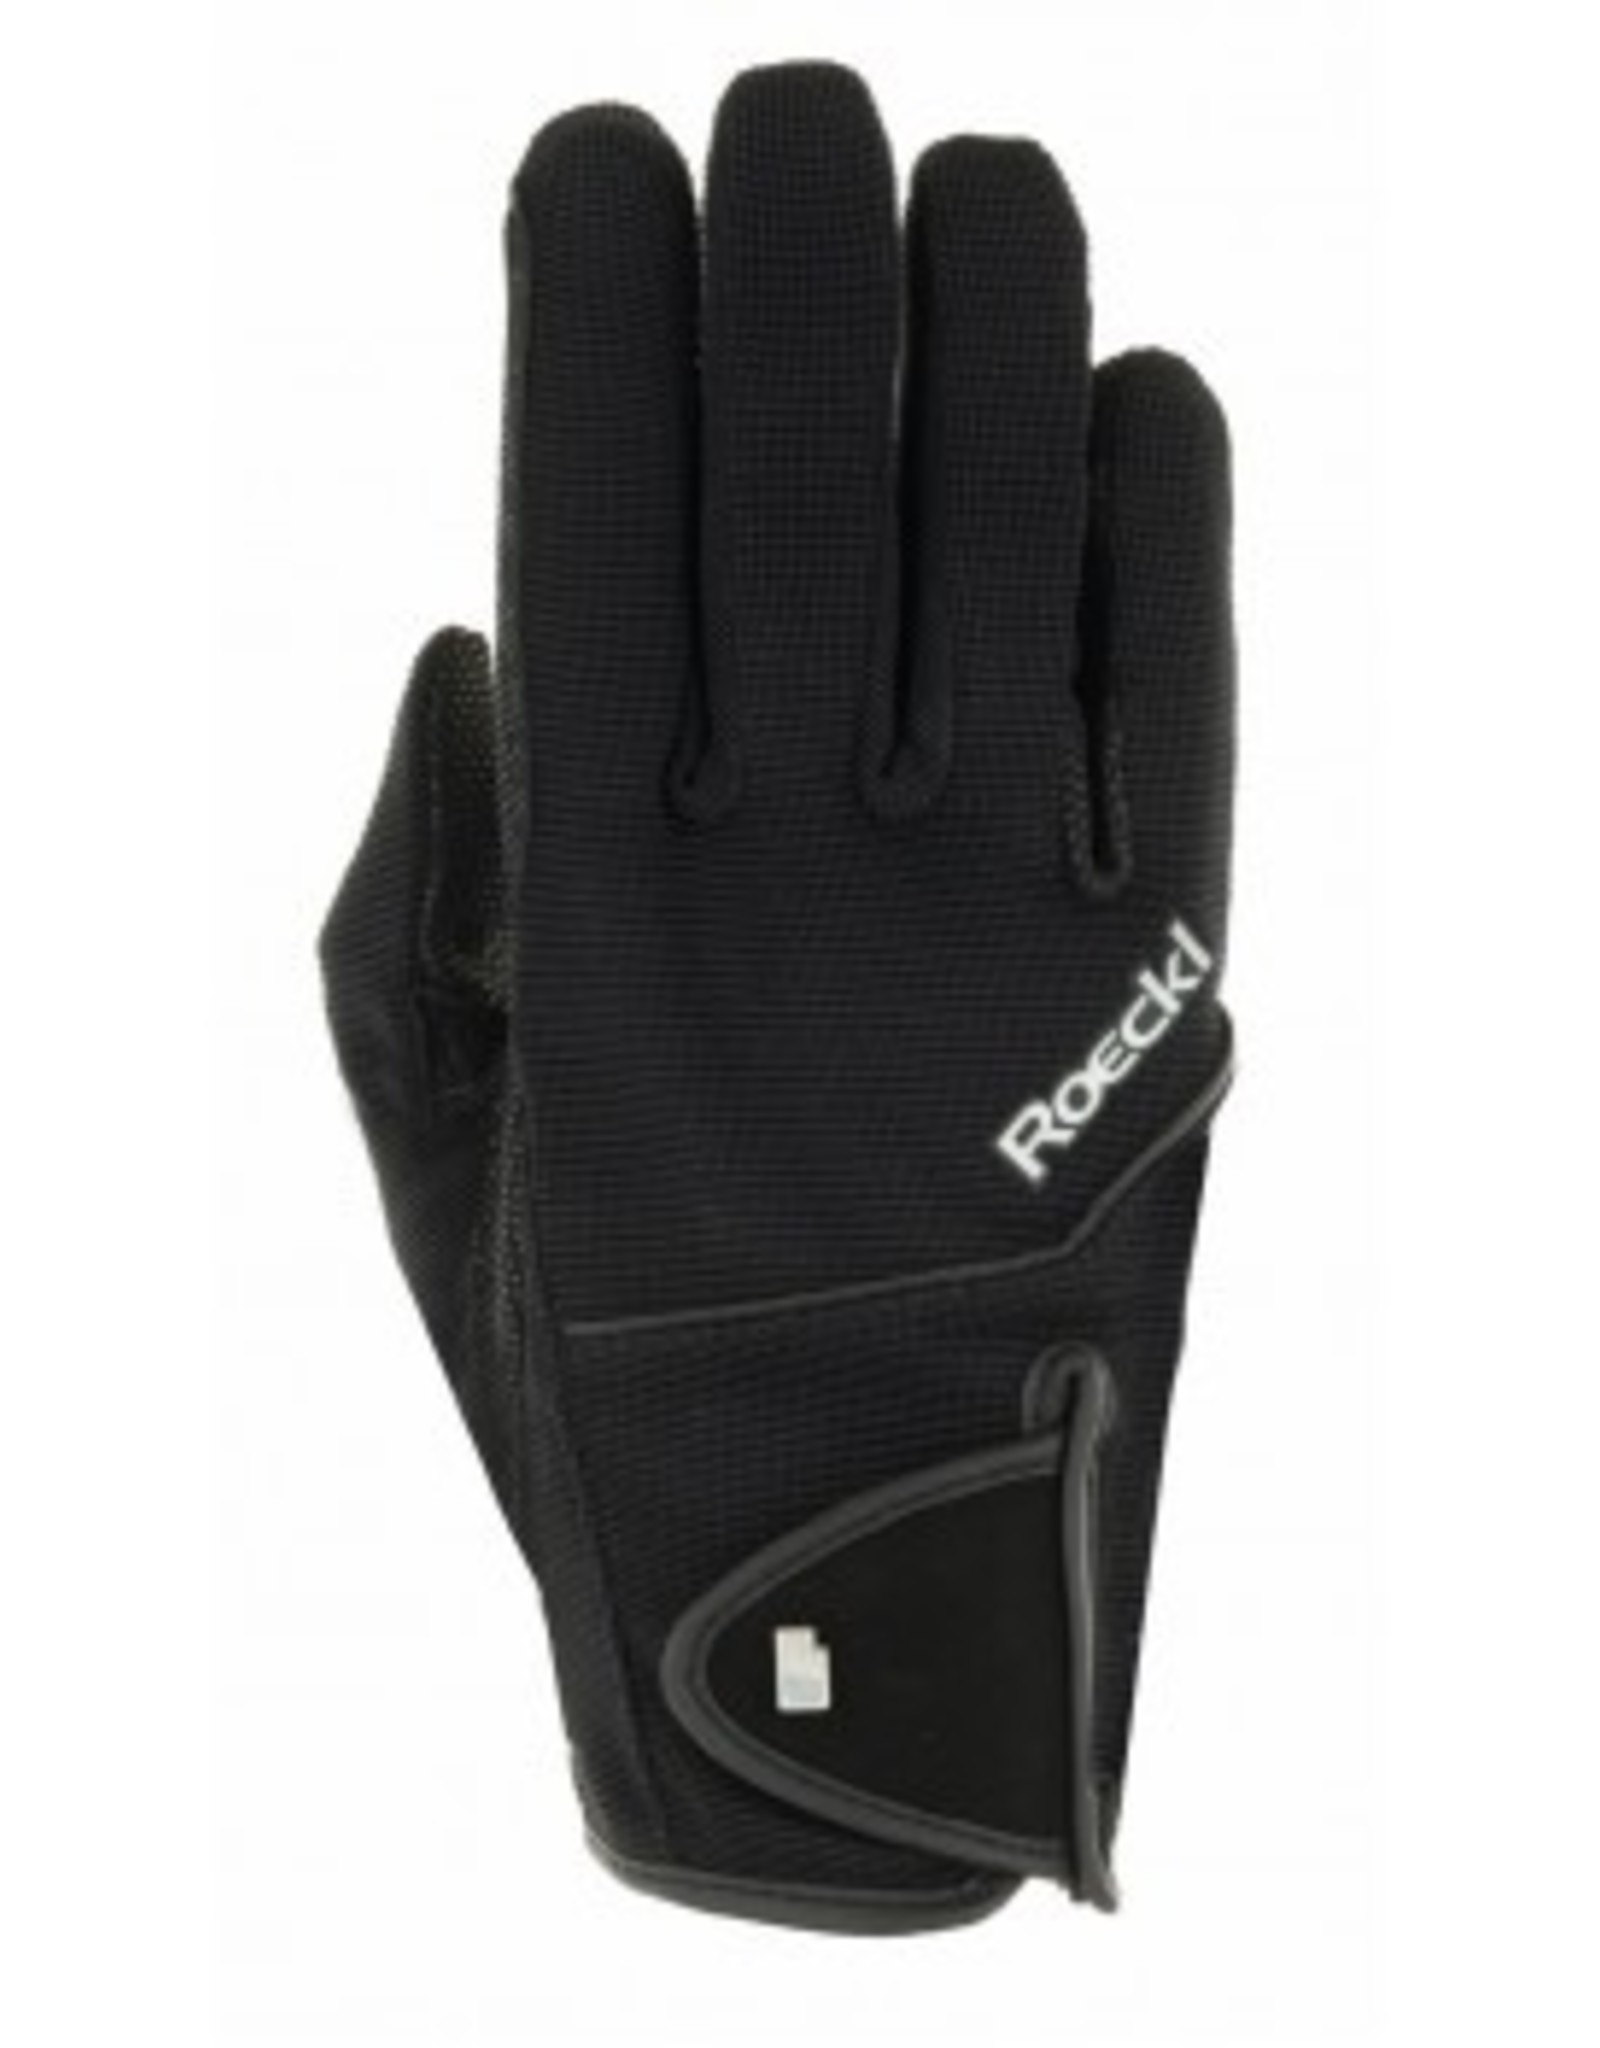 ROECKL MILANO UNISEX RIDING GLOVE